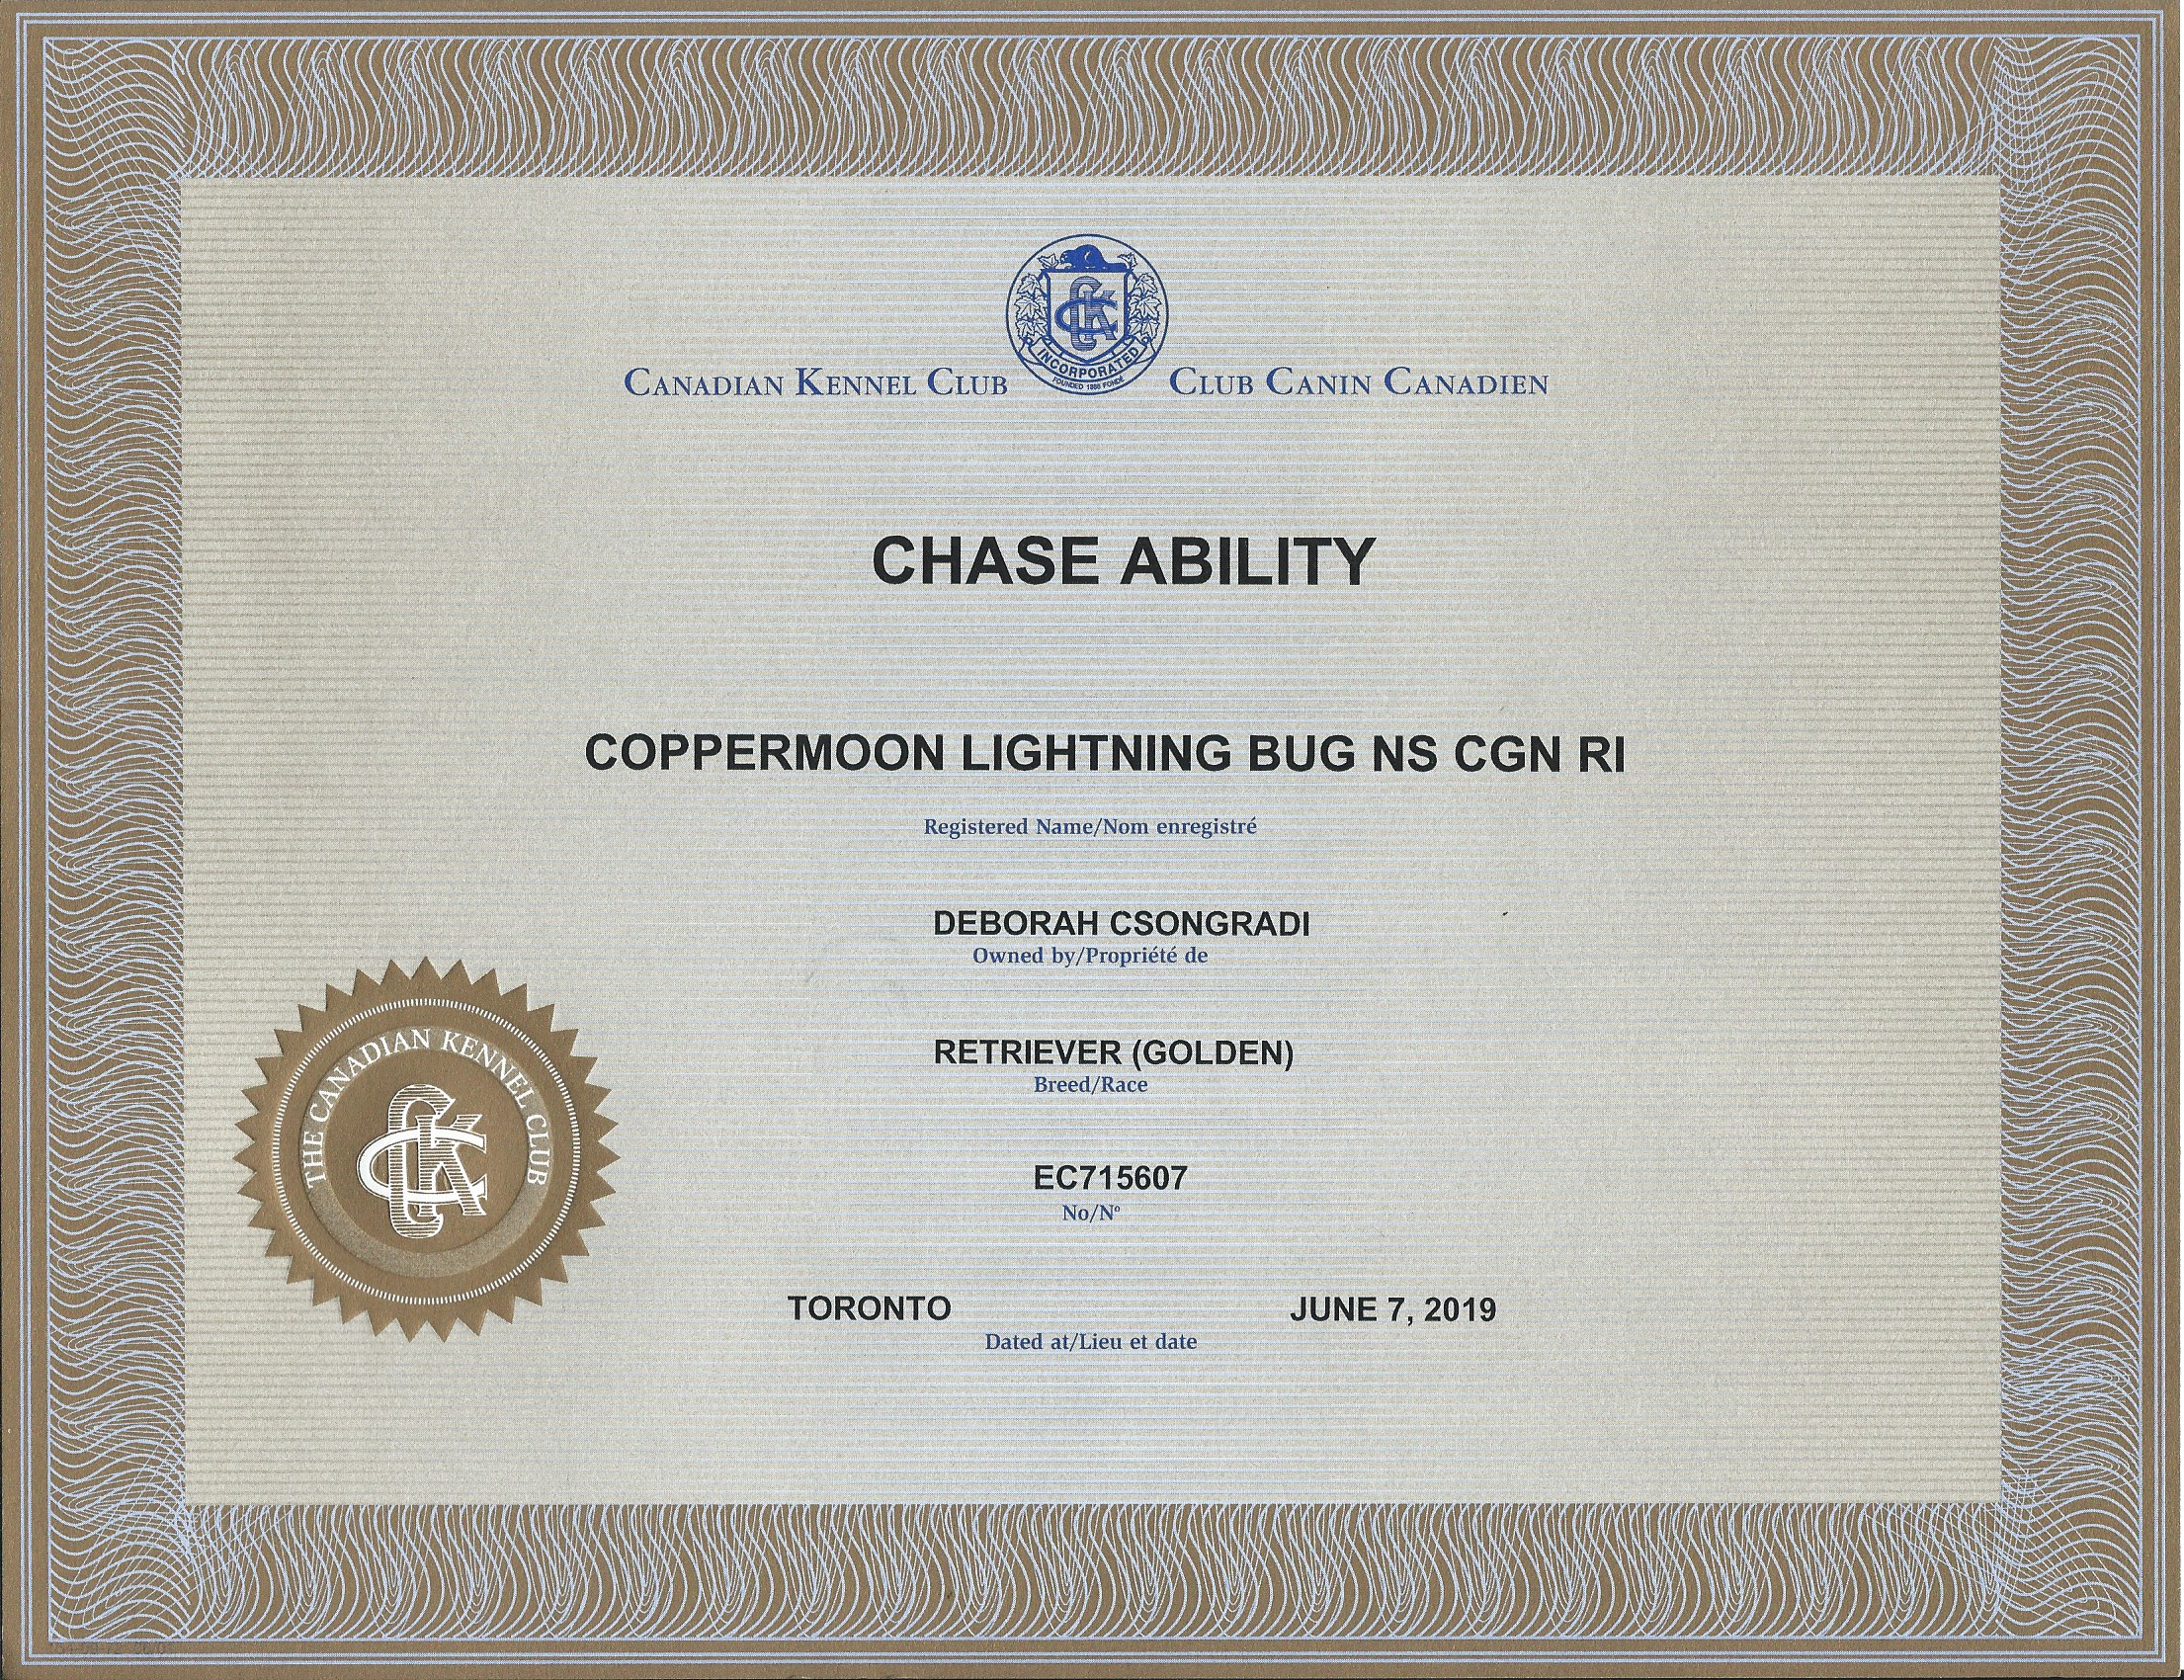 Brodie_CKC-ChaseAbility